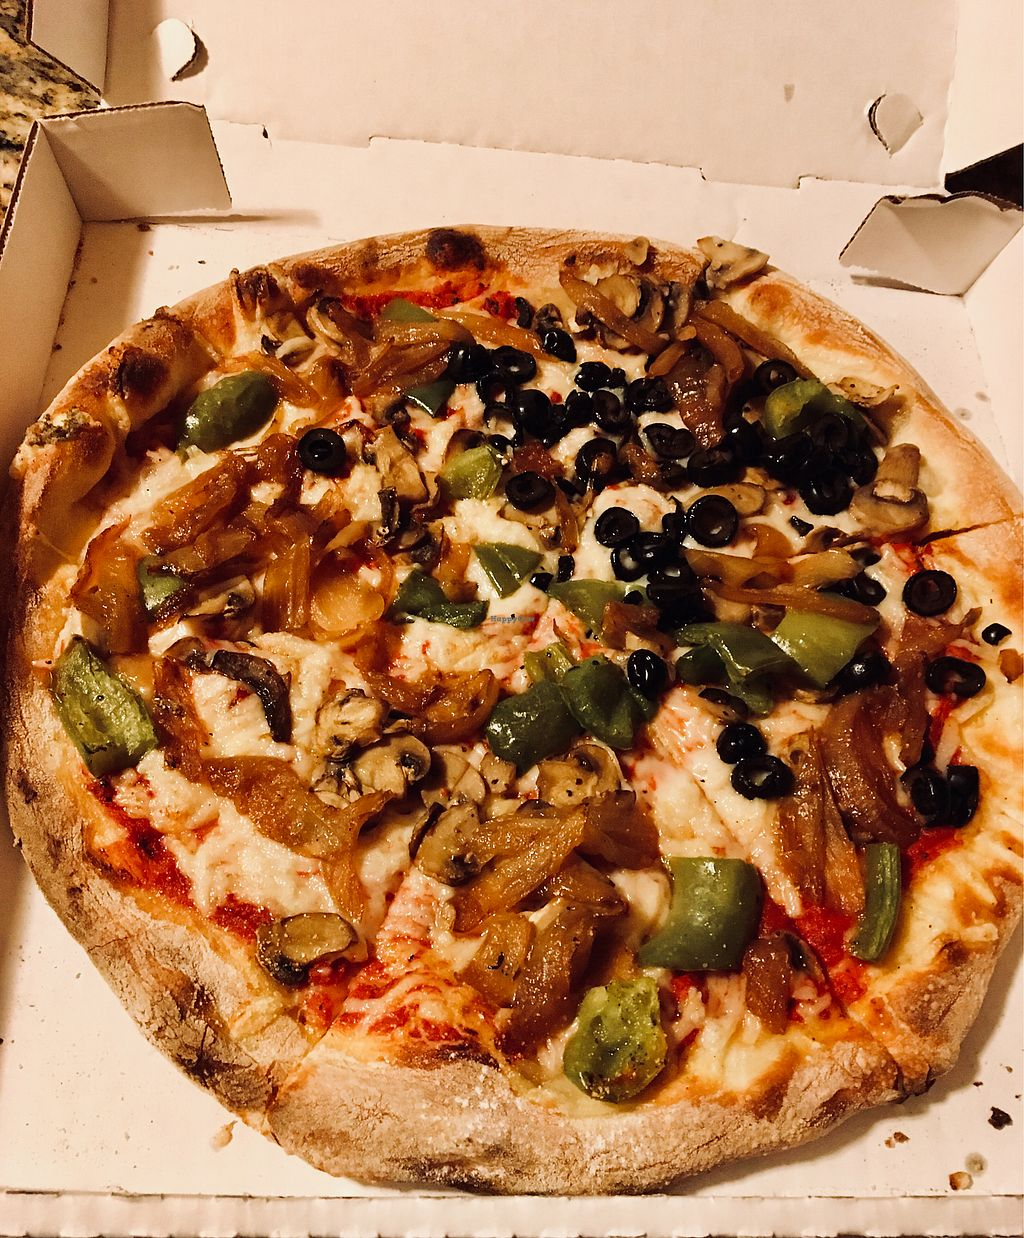 "Photo of Amici's East Coast Pizzeria  by <a href=""/members/profile/Clean%26Green"">Clean&Green</a> <br/>Veggie pizza vegan cheese  <br/> January 22, 2018  - <a href='/contact/abuse/image/109695/349843'>Report</a>"